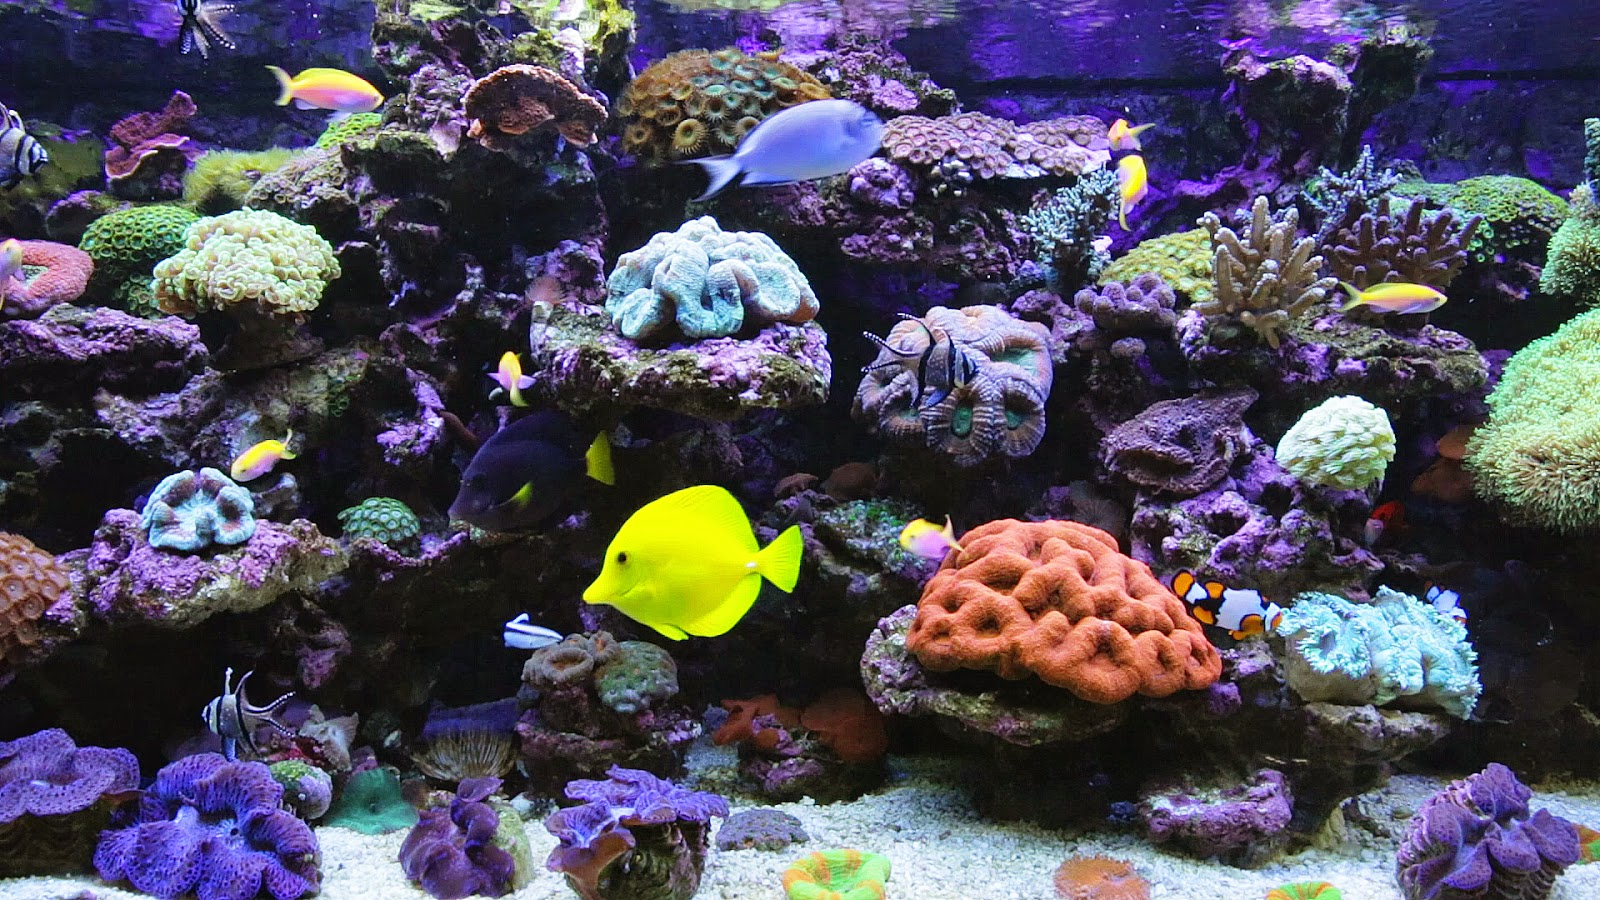 Real Aquarium Desktop Wallpaper 1920 x 1080